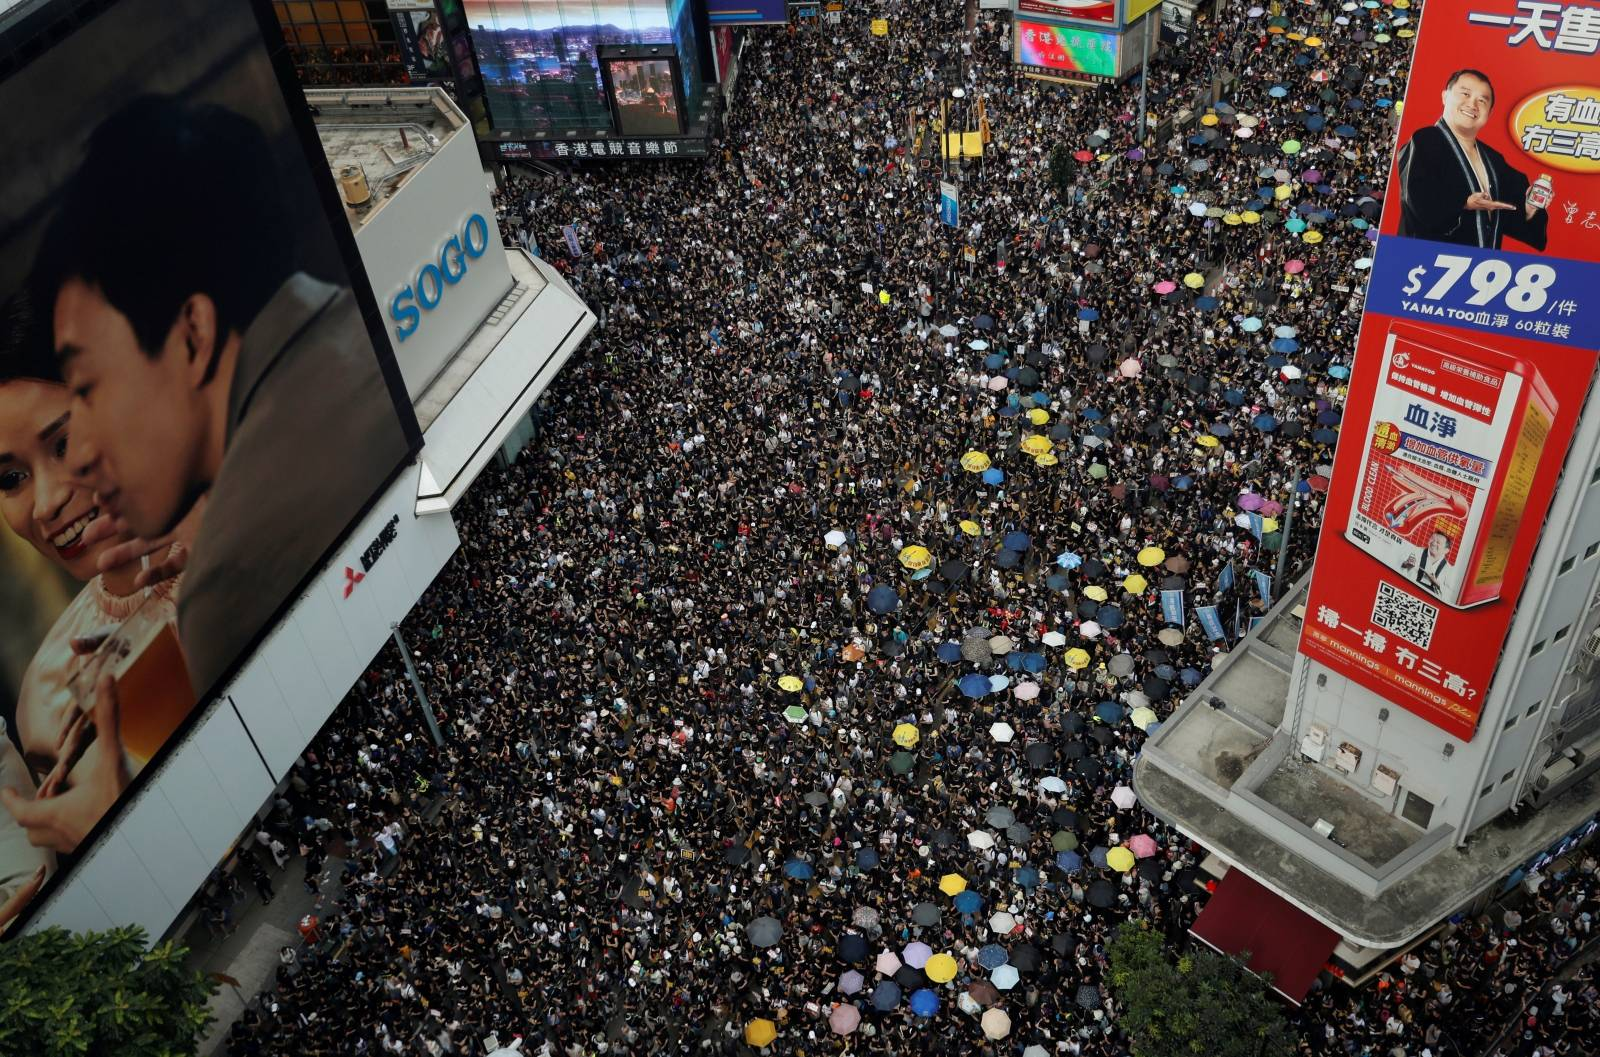 Anti-extradition demonstrators march to call for democratic reforms, in Hong Kong